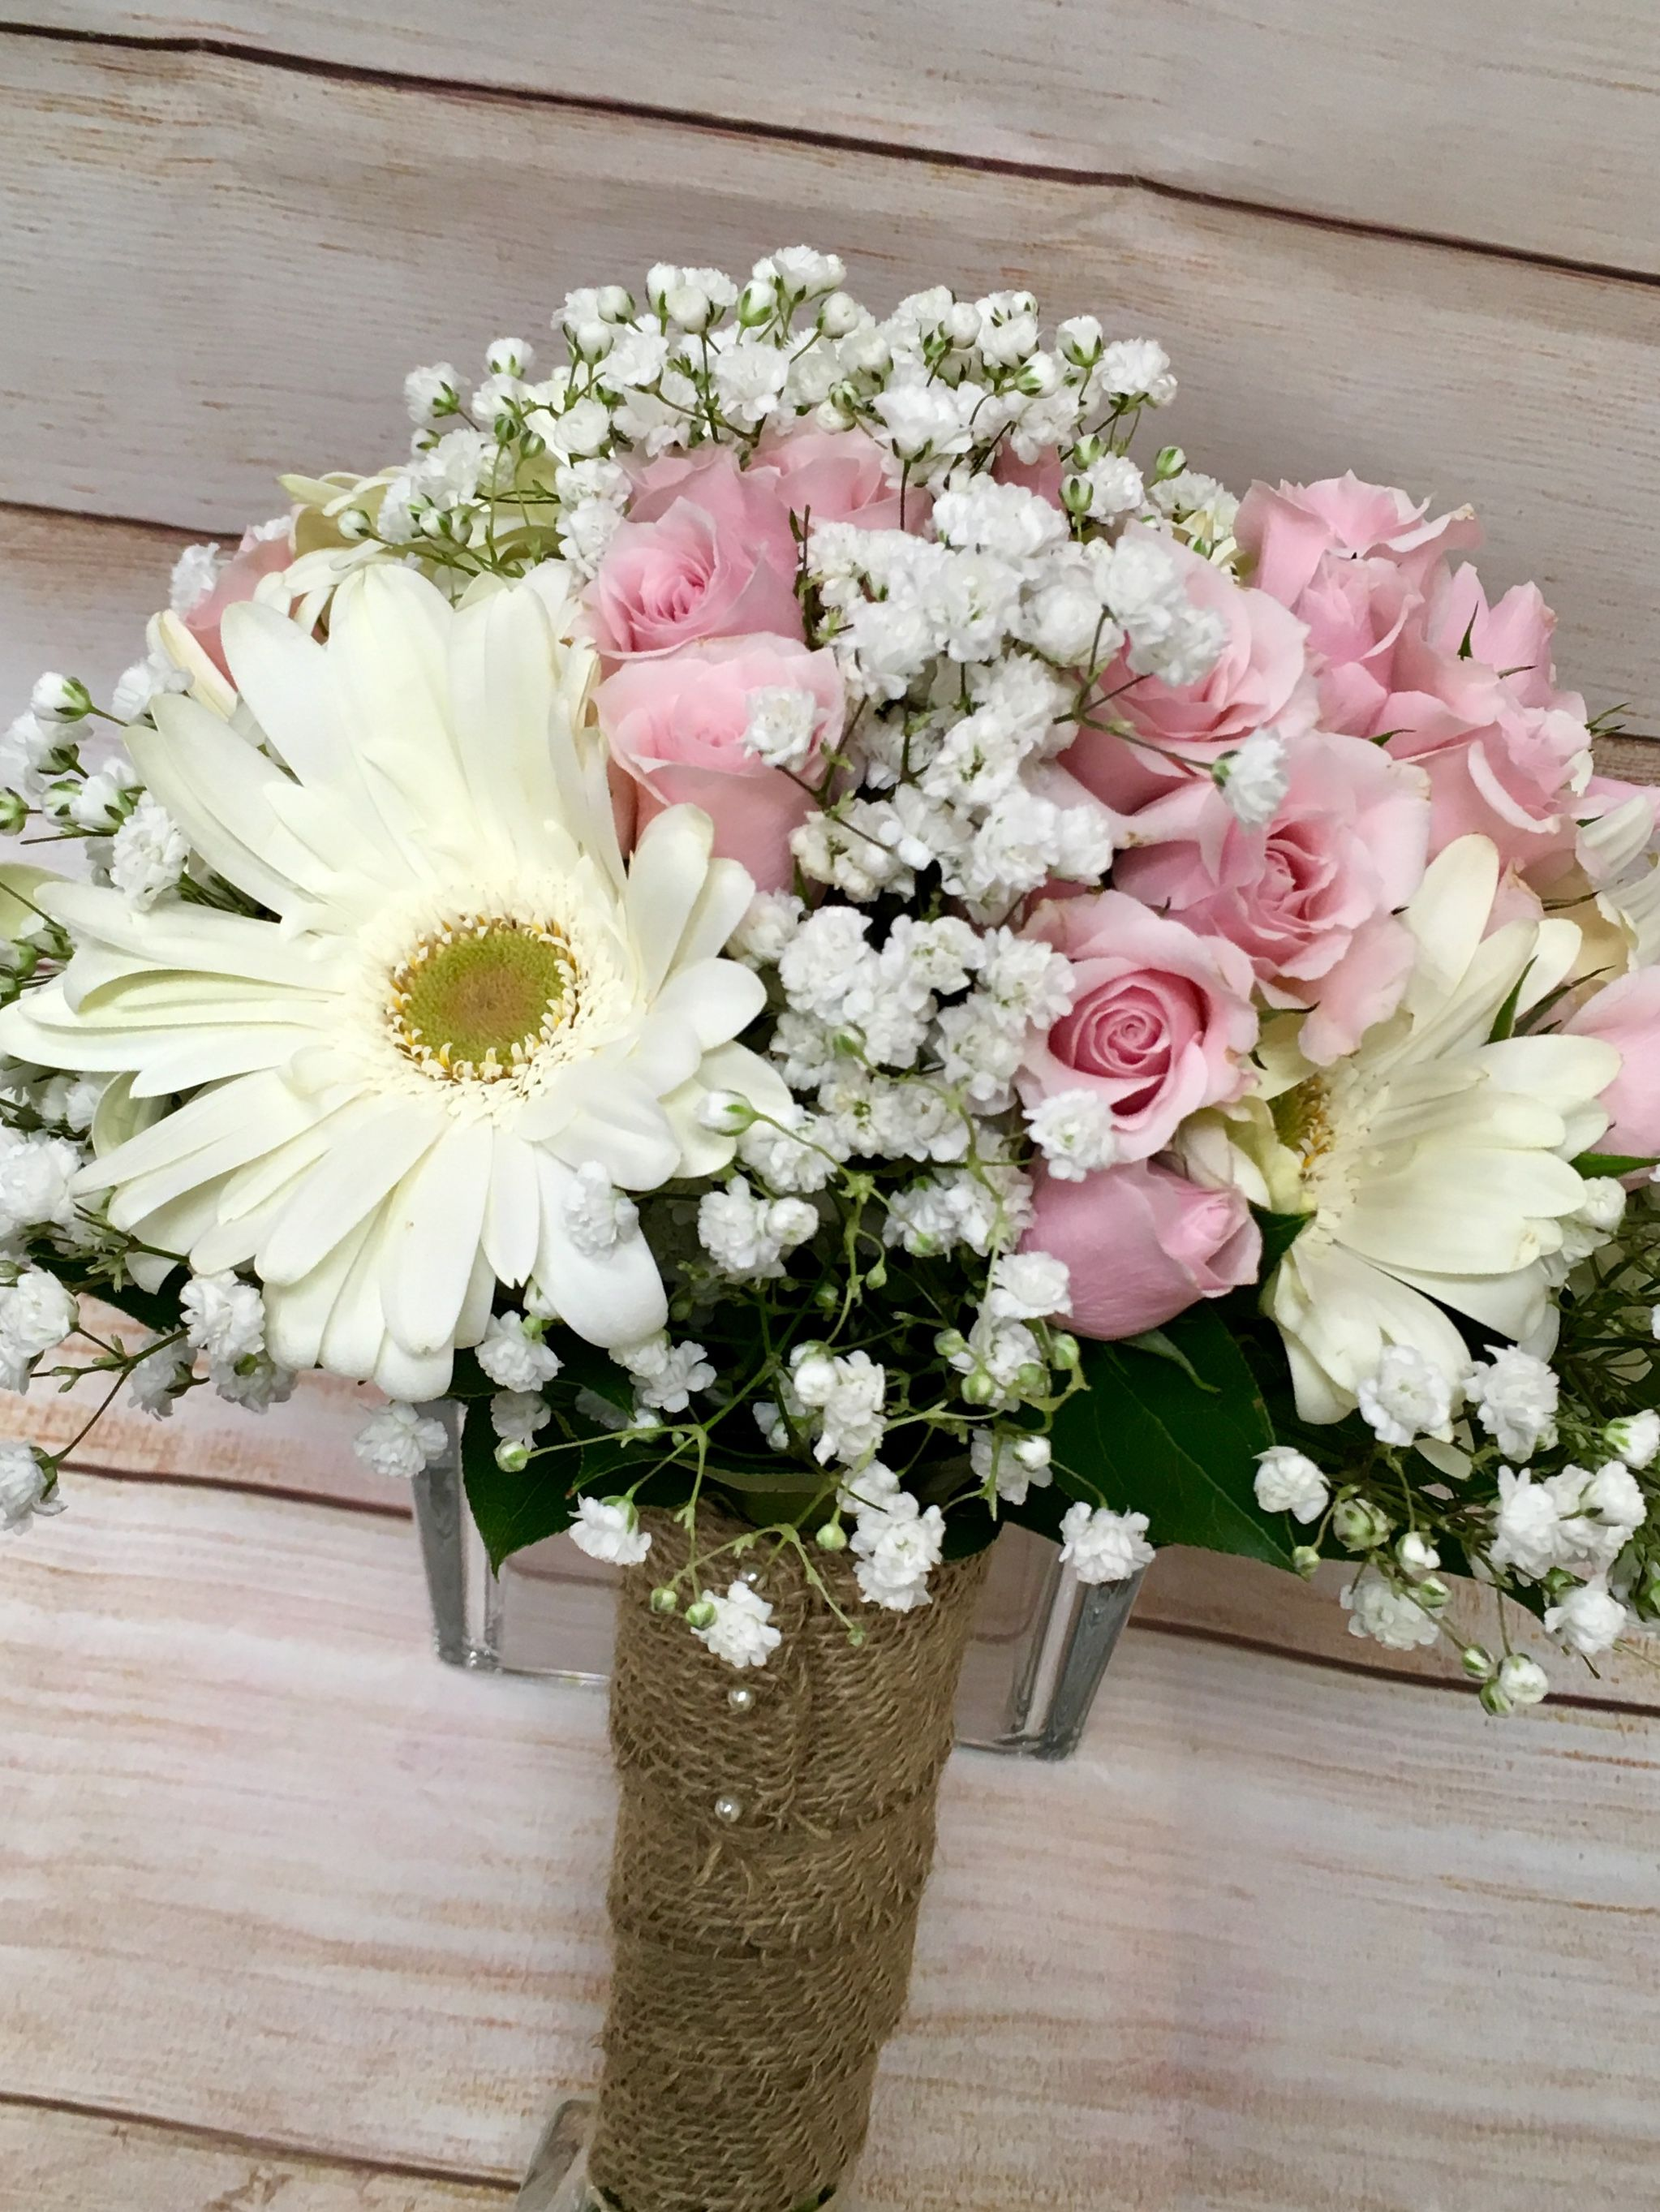 A Rustic Hand Tie Bouquet Using White Gerbera Daisies And Babies Breath And Accents Of Pink Spra Flower Bouquet Wedding Pink Rose Bouquet Gerbera Daisy Bouquet